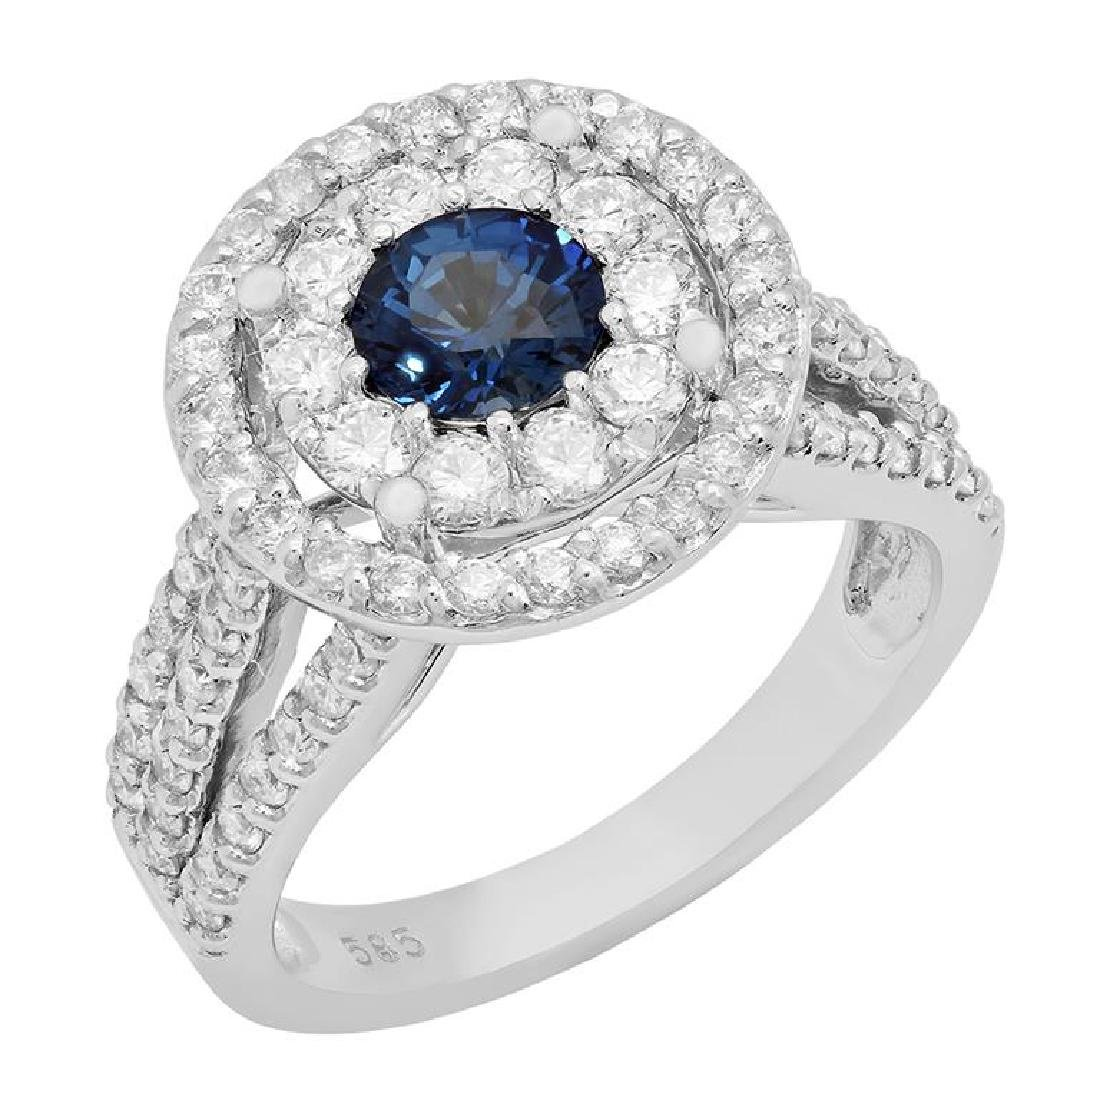 14k White Gold 0.99ct Sapphire 1.52ct Diamond Ring